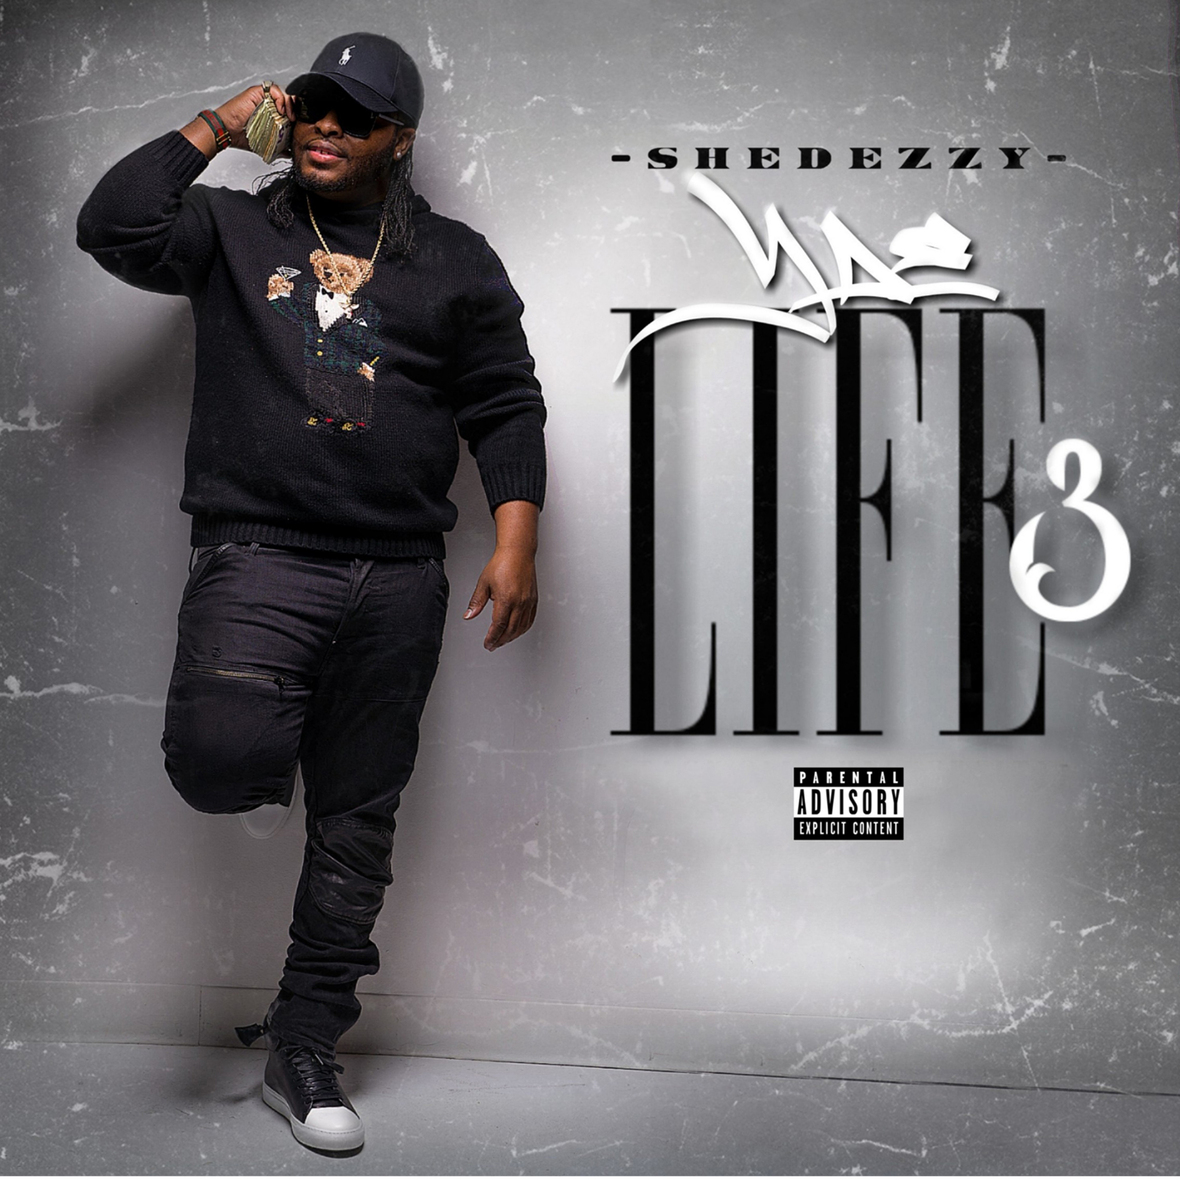 Shedezzy - Yae Life 3 artwork front